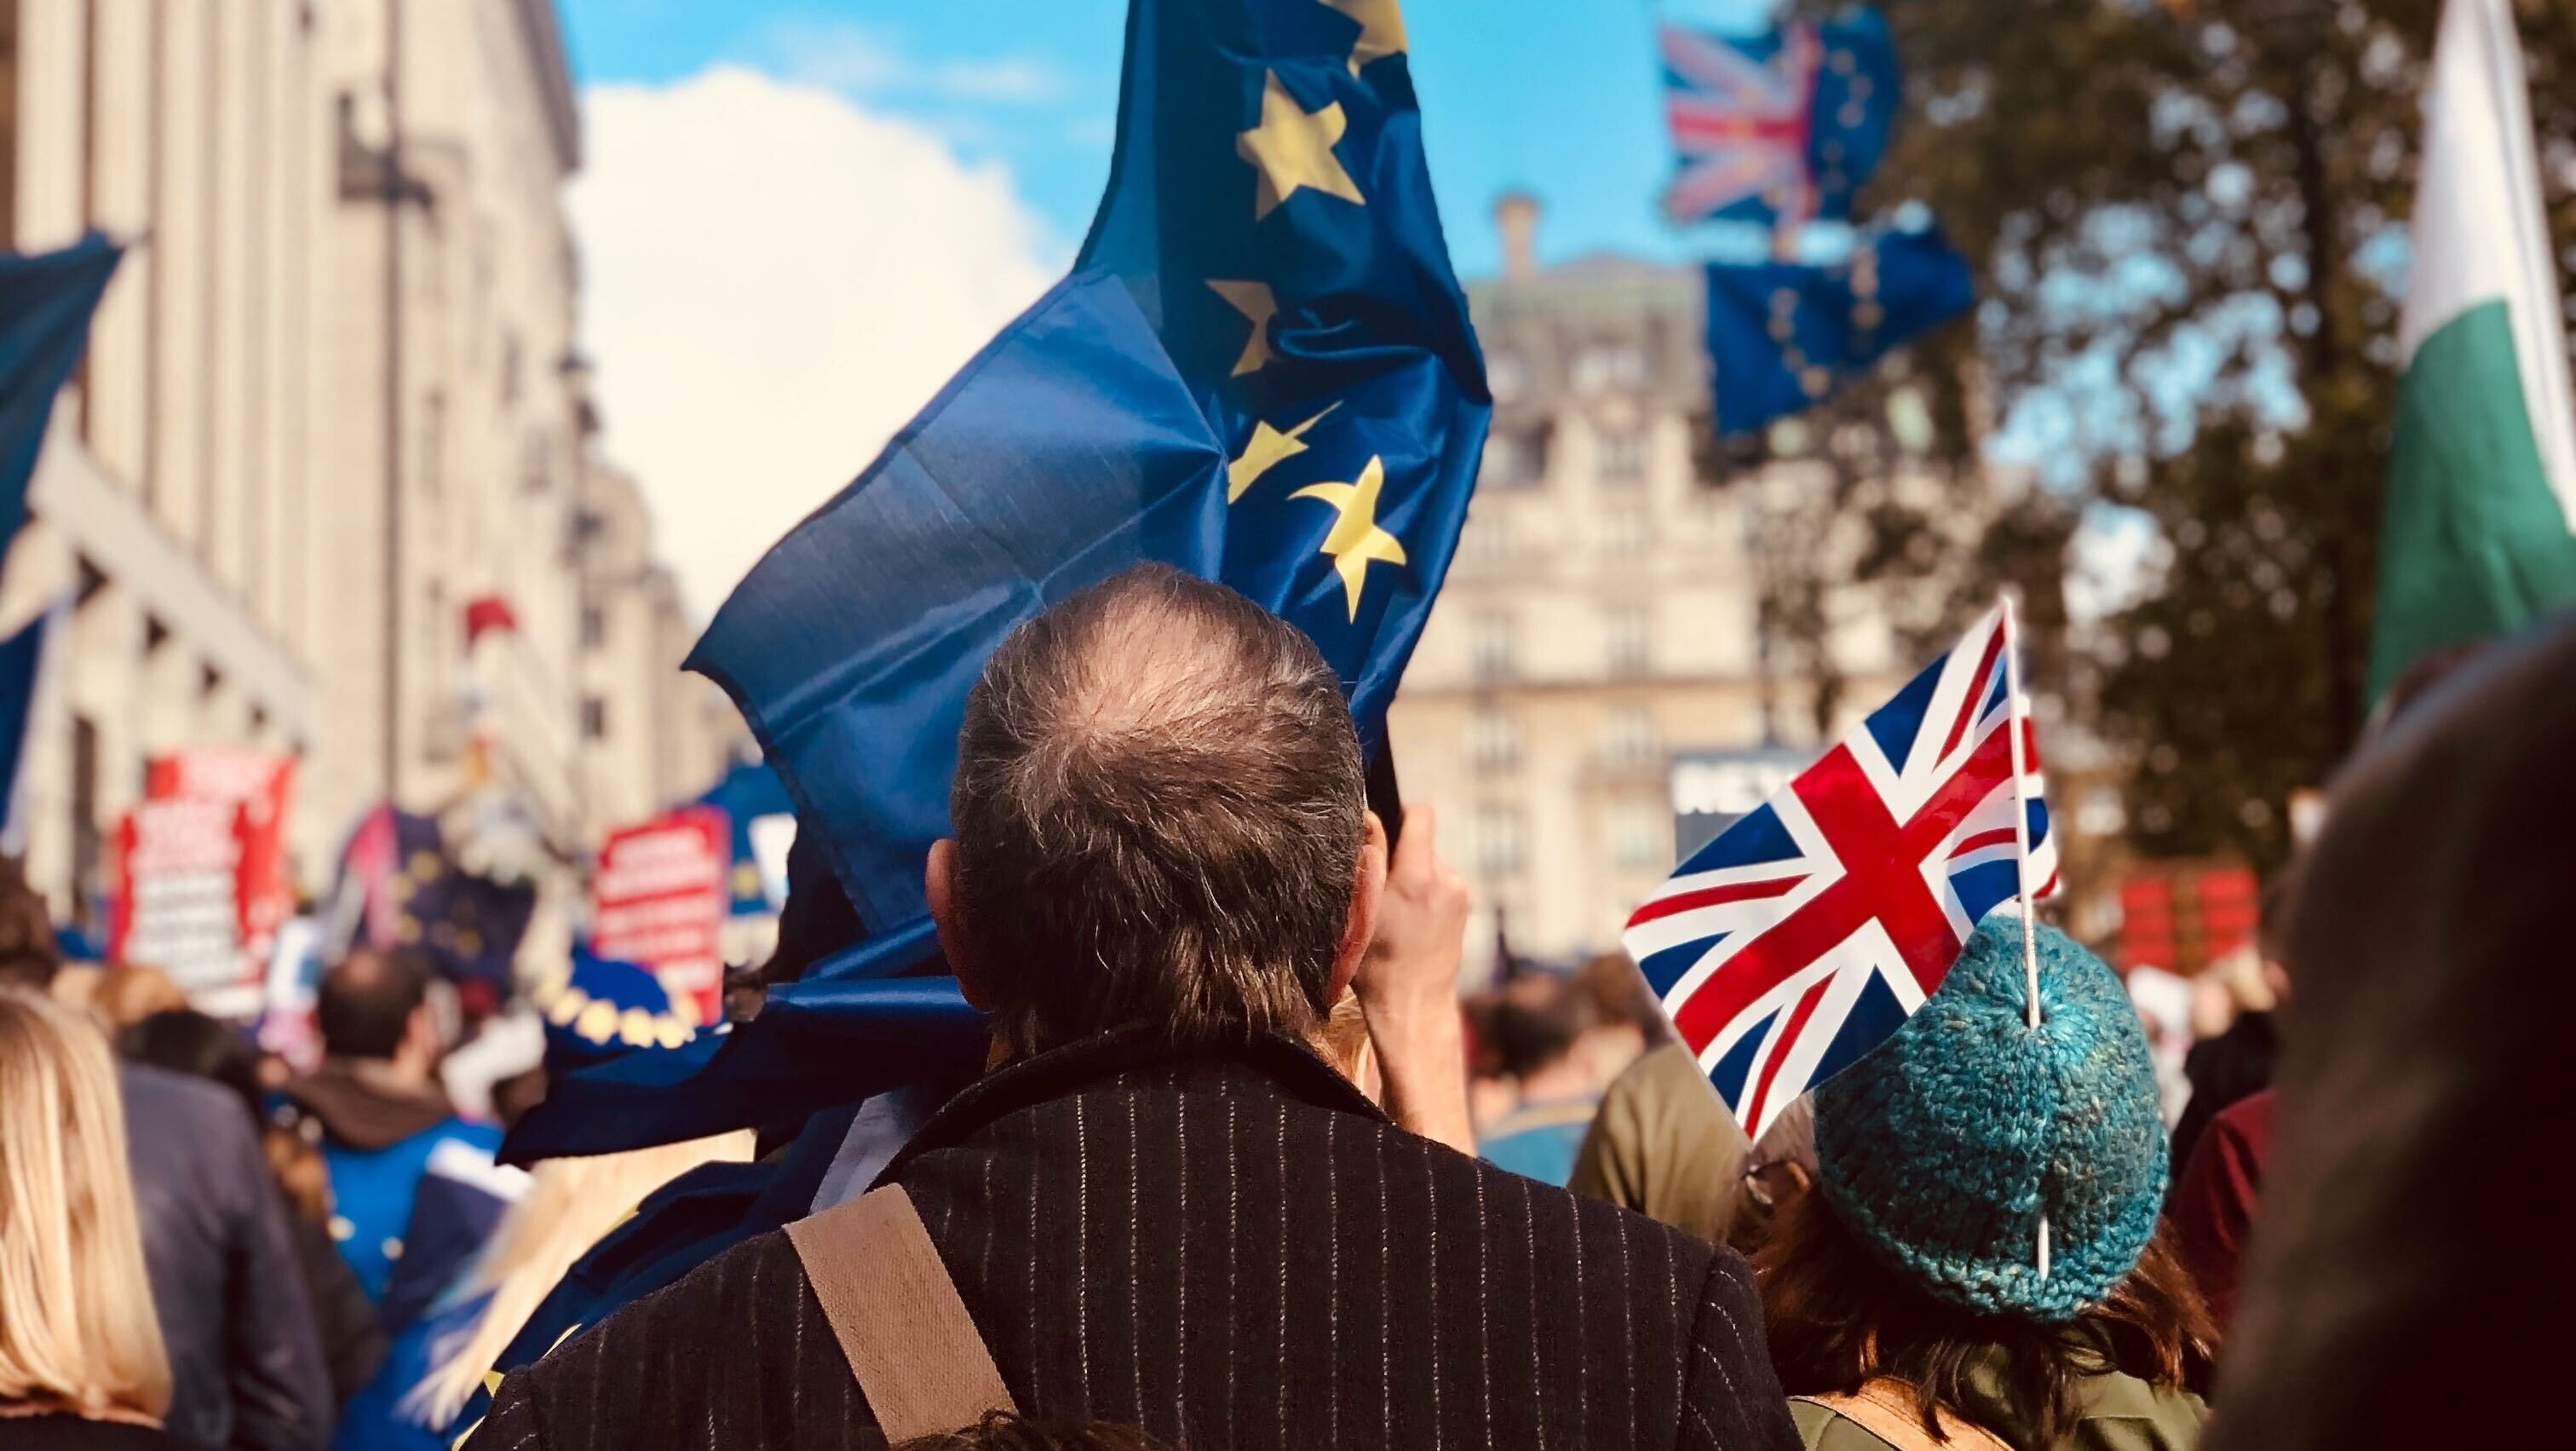 « L'intransigeance de l'Union finira par donner raison aux Brexiters » Gaspard Koenig